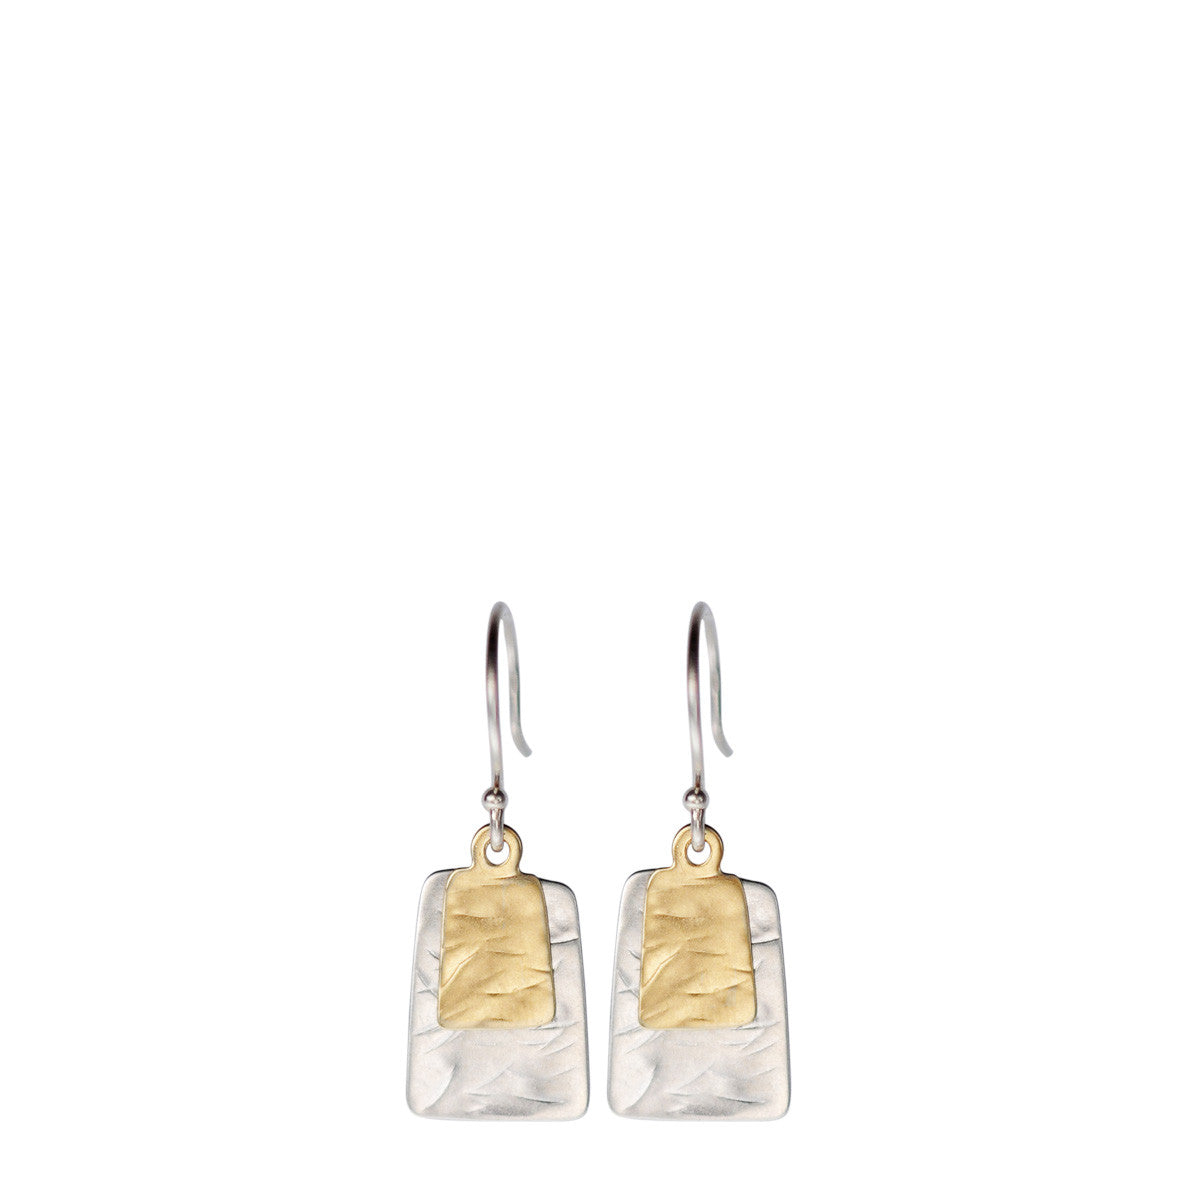 Sterling Silver & 10K Gold Flattened Double Square Earrings